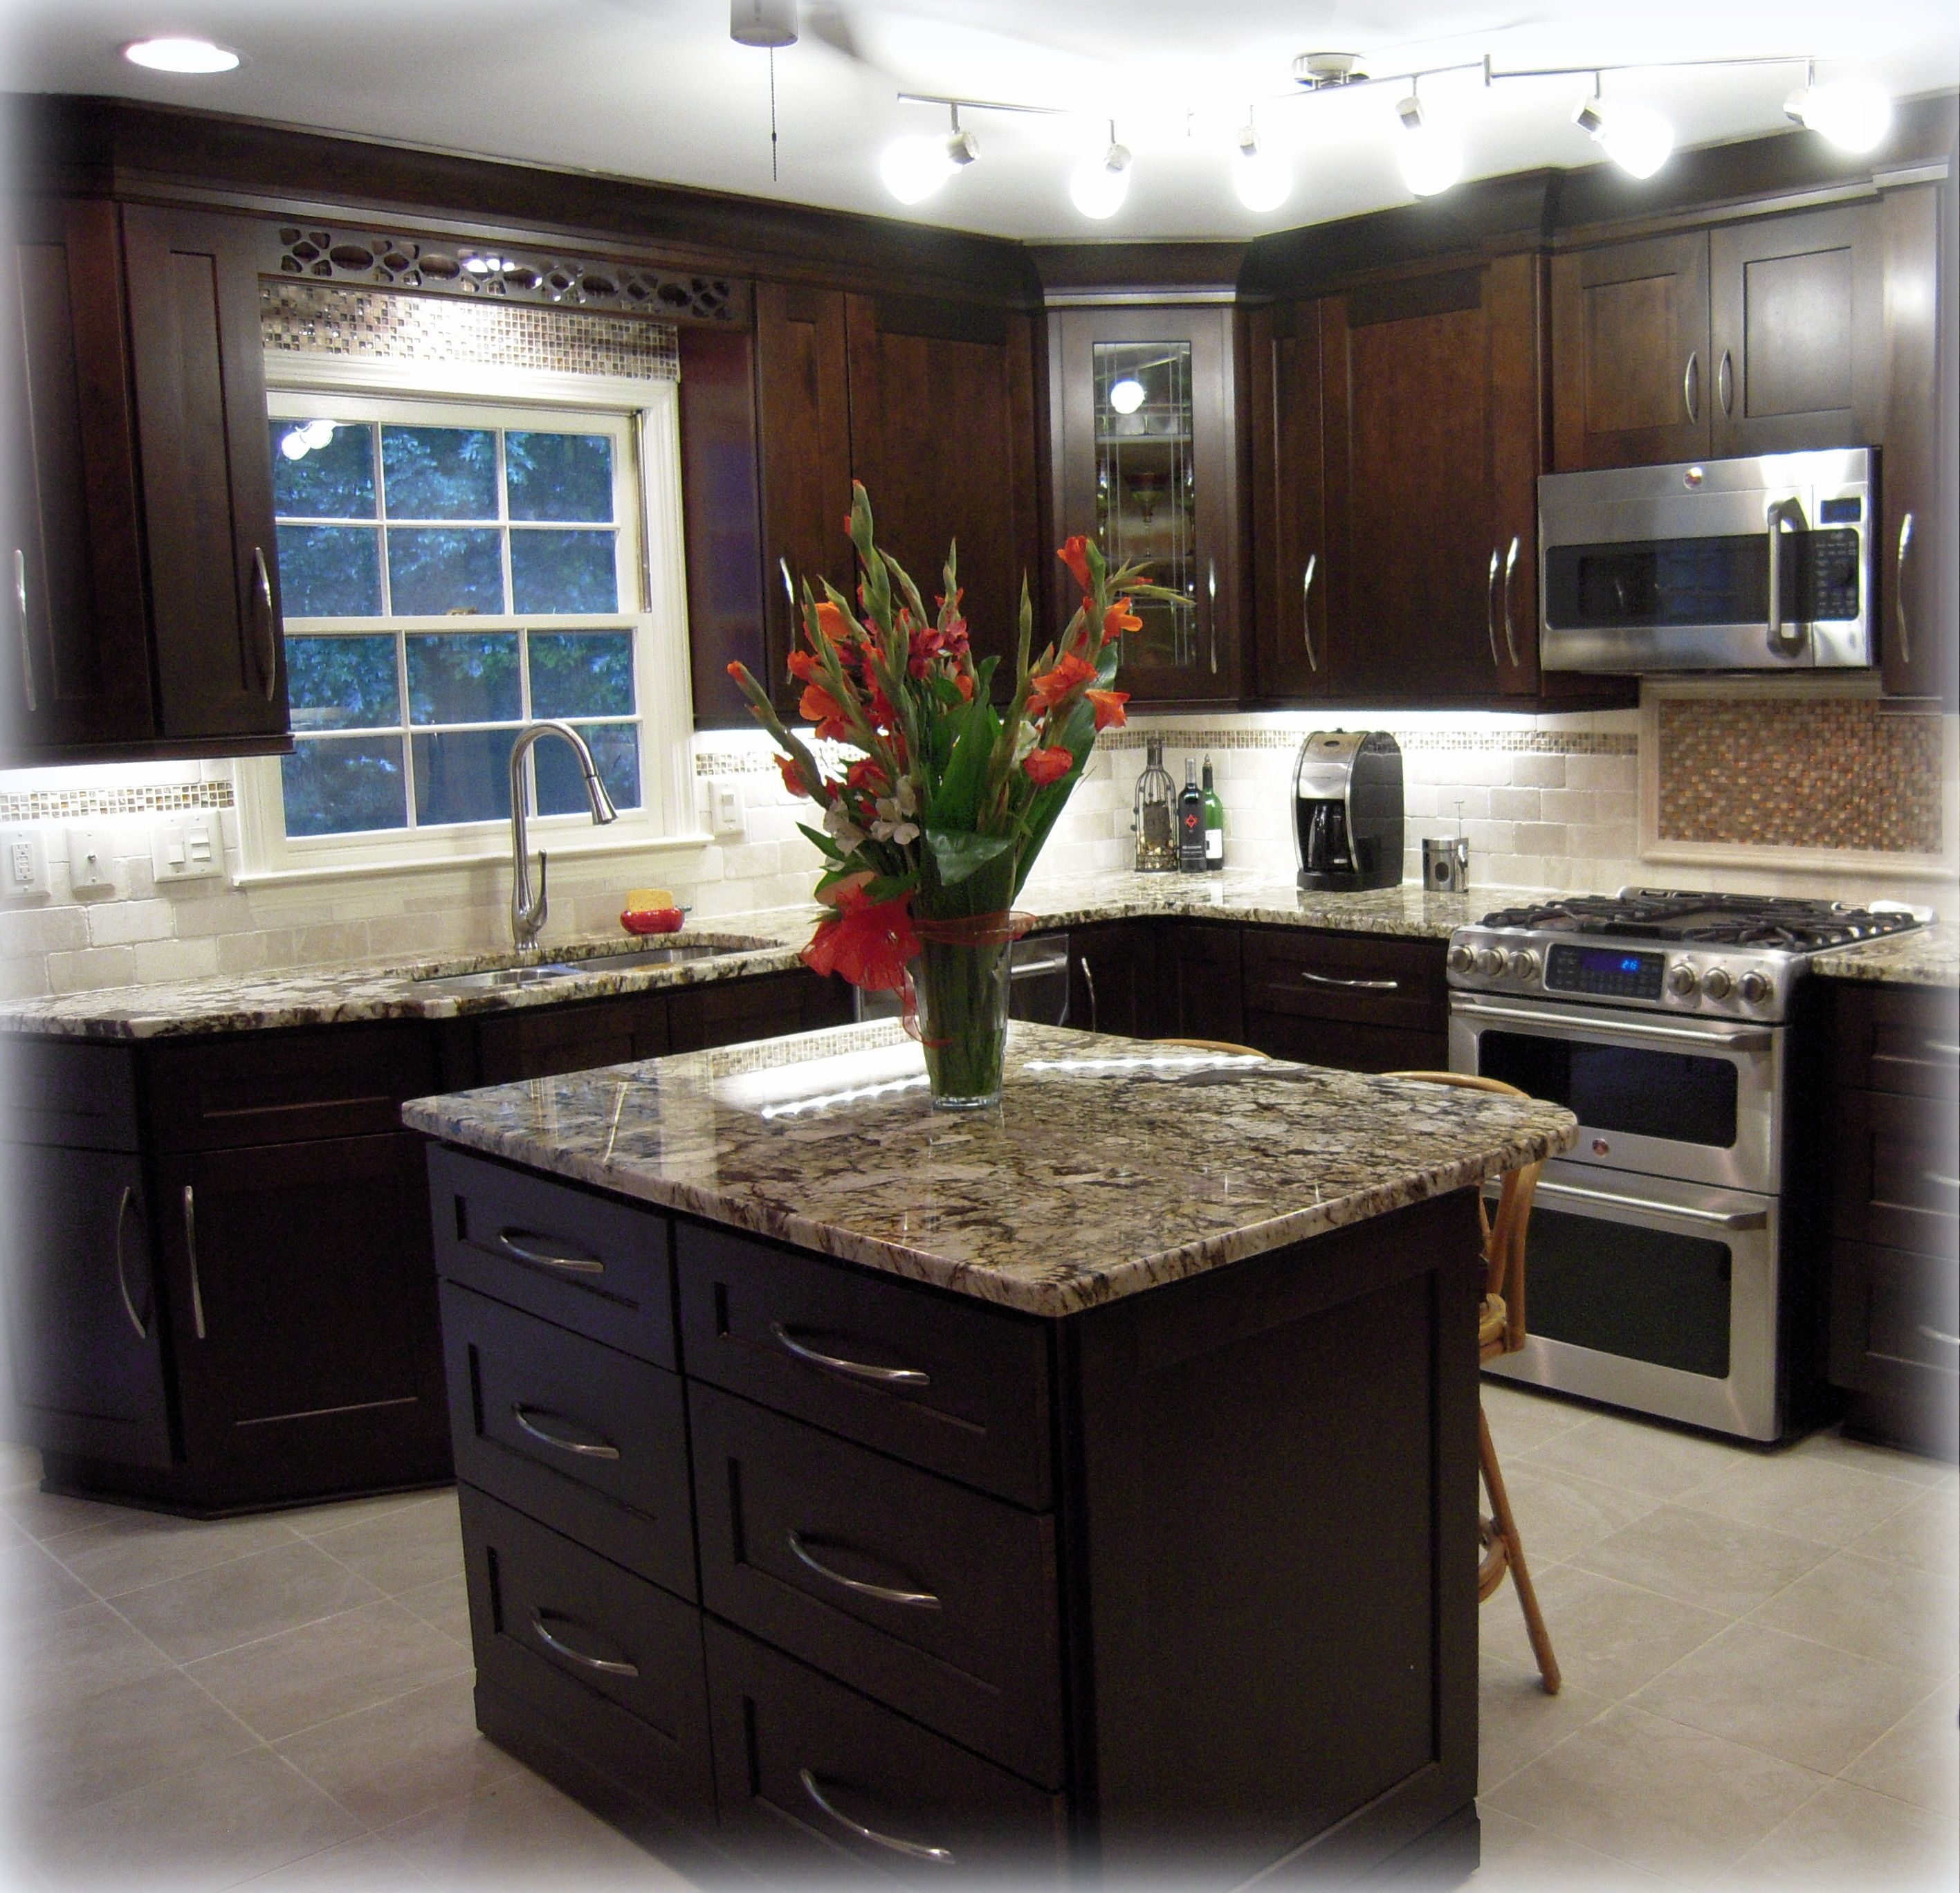 Download Wallpaper What Granite Looks Good With Dark Cabinets